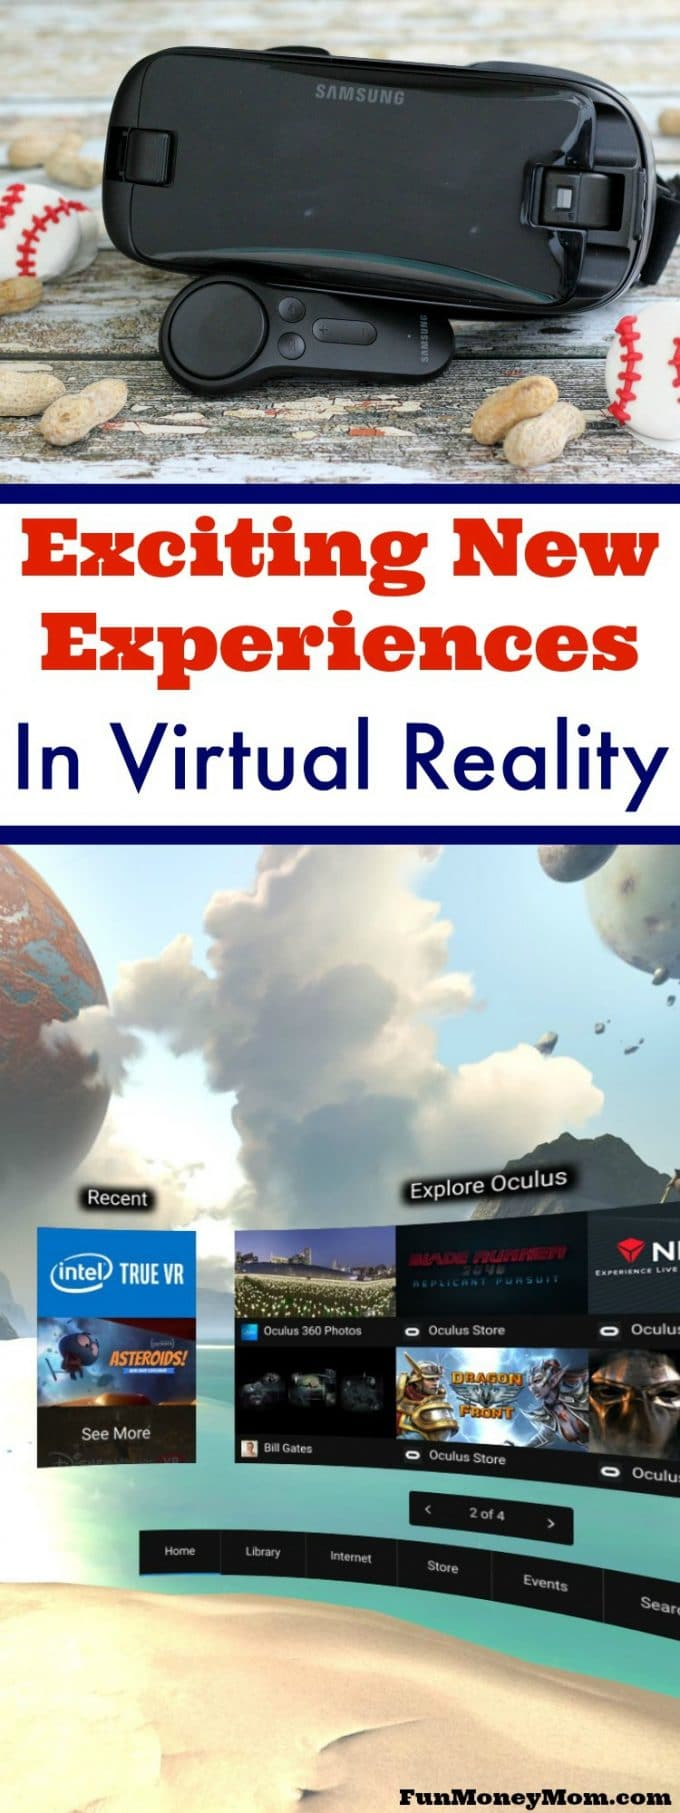 Check out the latest experiences in virtual reality, including something special for baseball fans!